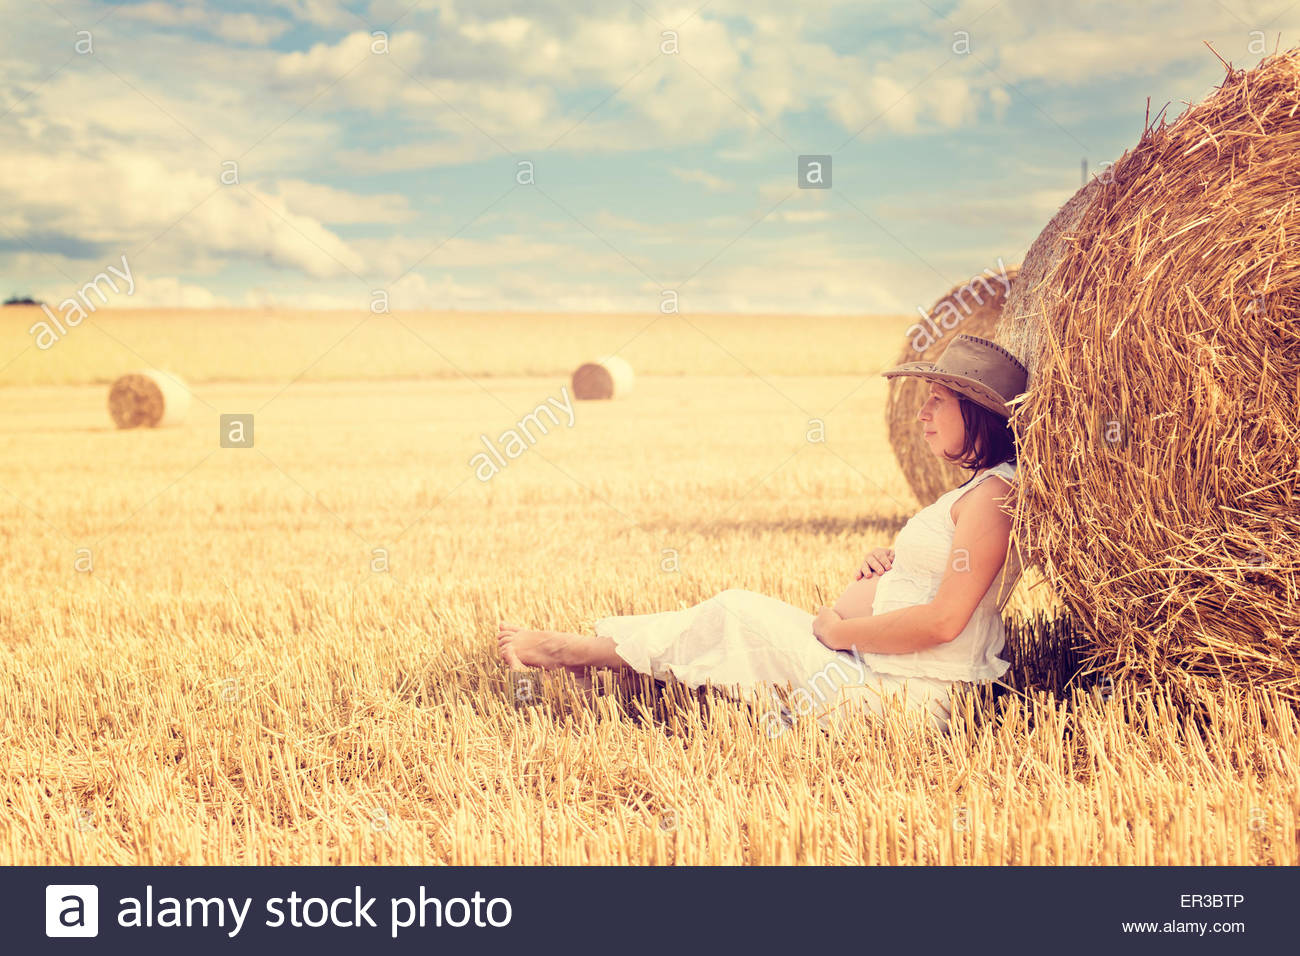 Pregnant woman leaning against a hay bale in a field - Stock Image